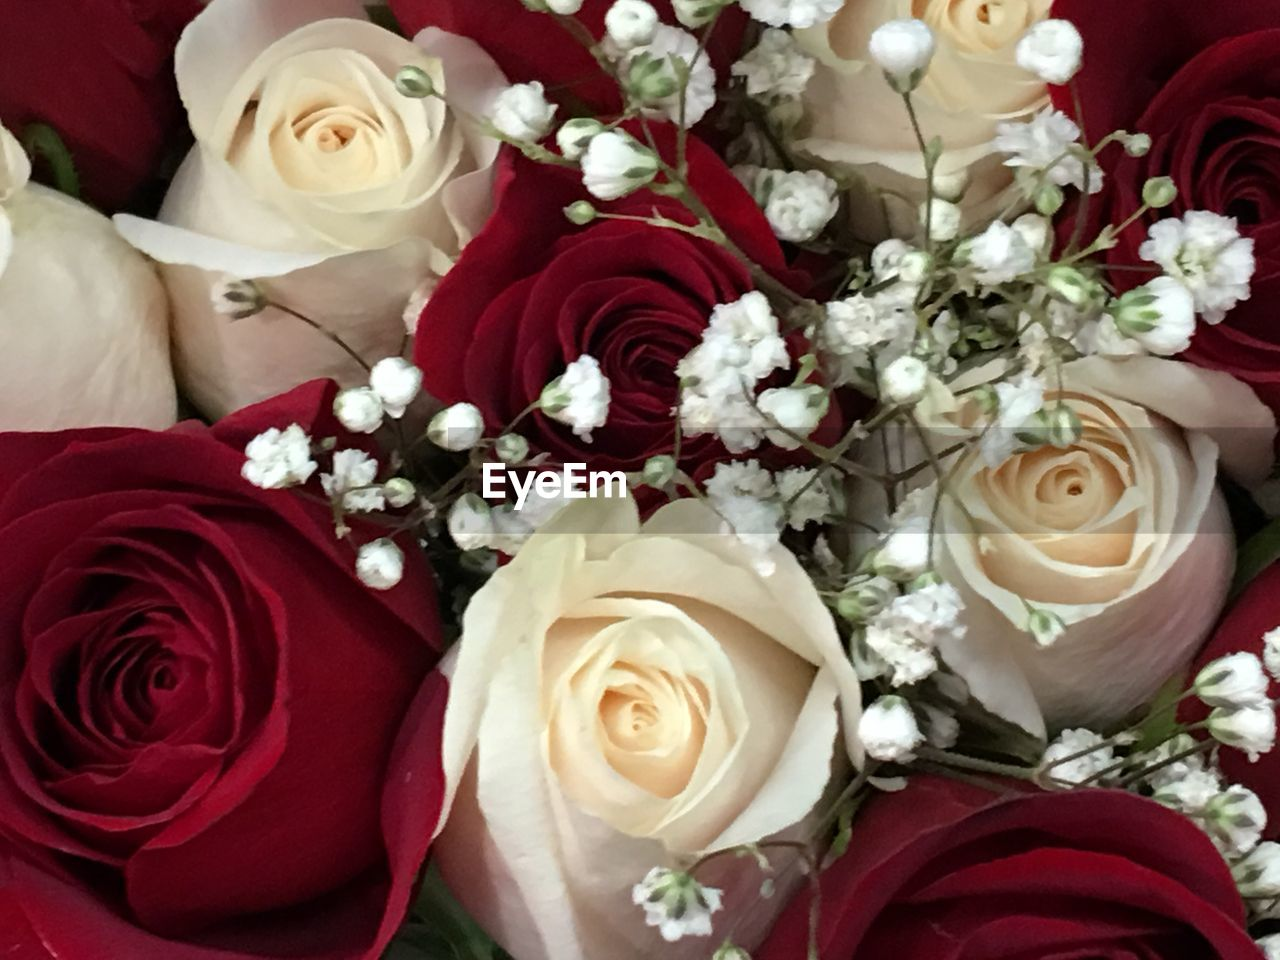 flower, rose - flower, bouquet, beauty in nature, petal, fragility, flower head, nature, wedding, celebration, white color, freshness, no people, red, indoors, close-up, day